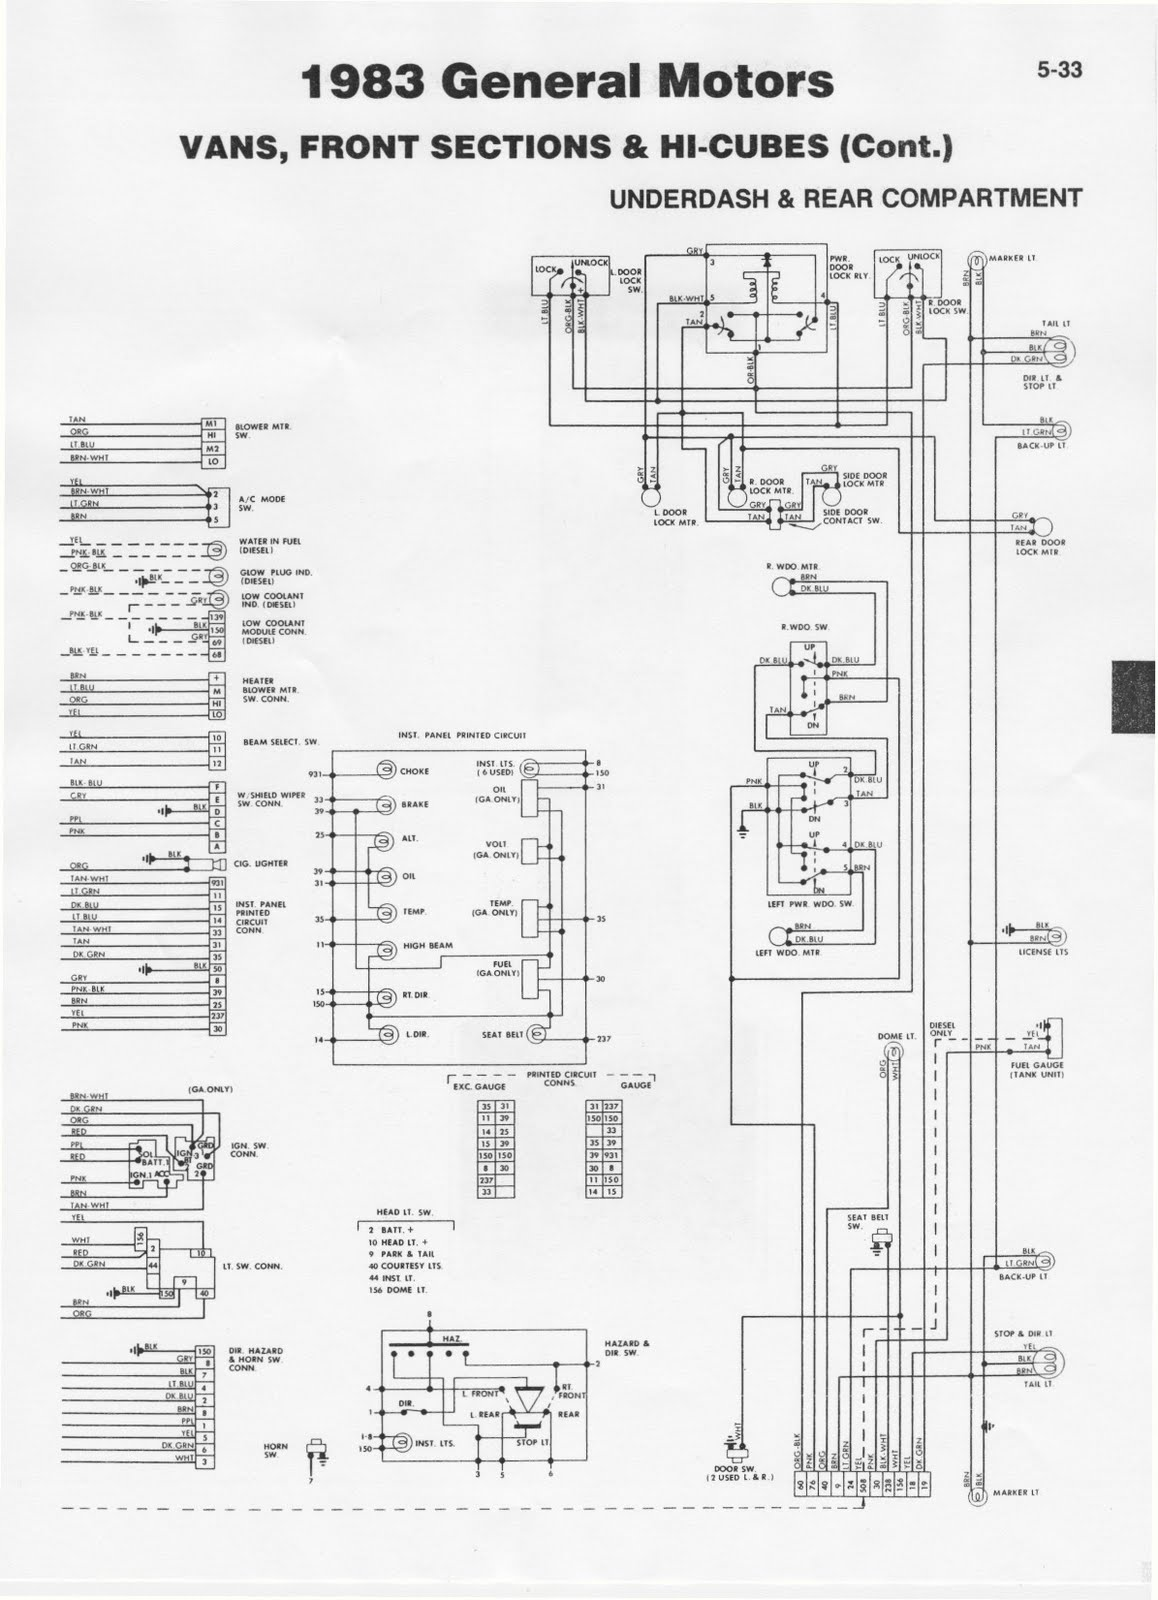 Fleetwood Rv Wiring Diagram 1983 Chevy additionally Wiring Diagram For 1998 Damon Intruder furthermore Fleetwood Rv Landing Gear Wiring Diagrams in addition Ford E350 Fuse Box Diagram also 465qp Ford F53 7 5 Gasoline Engine Wiring. on 96 bounder wiring diagram